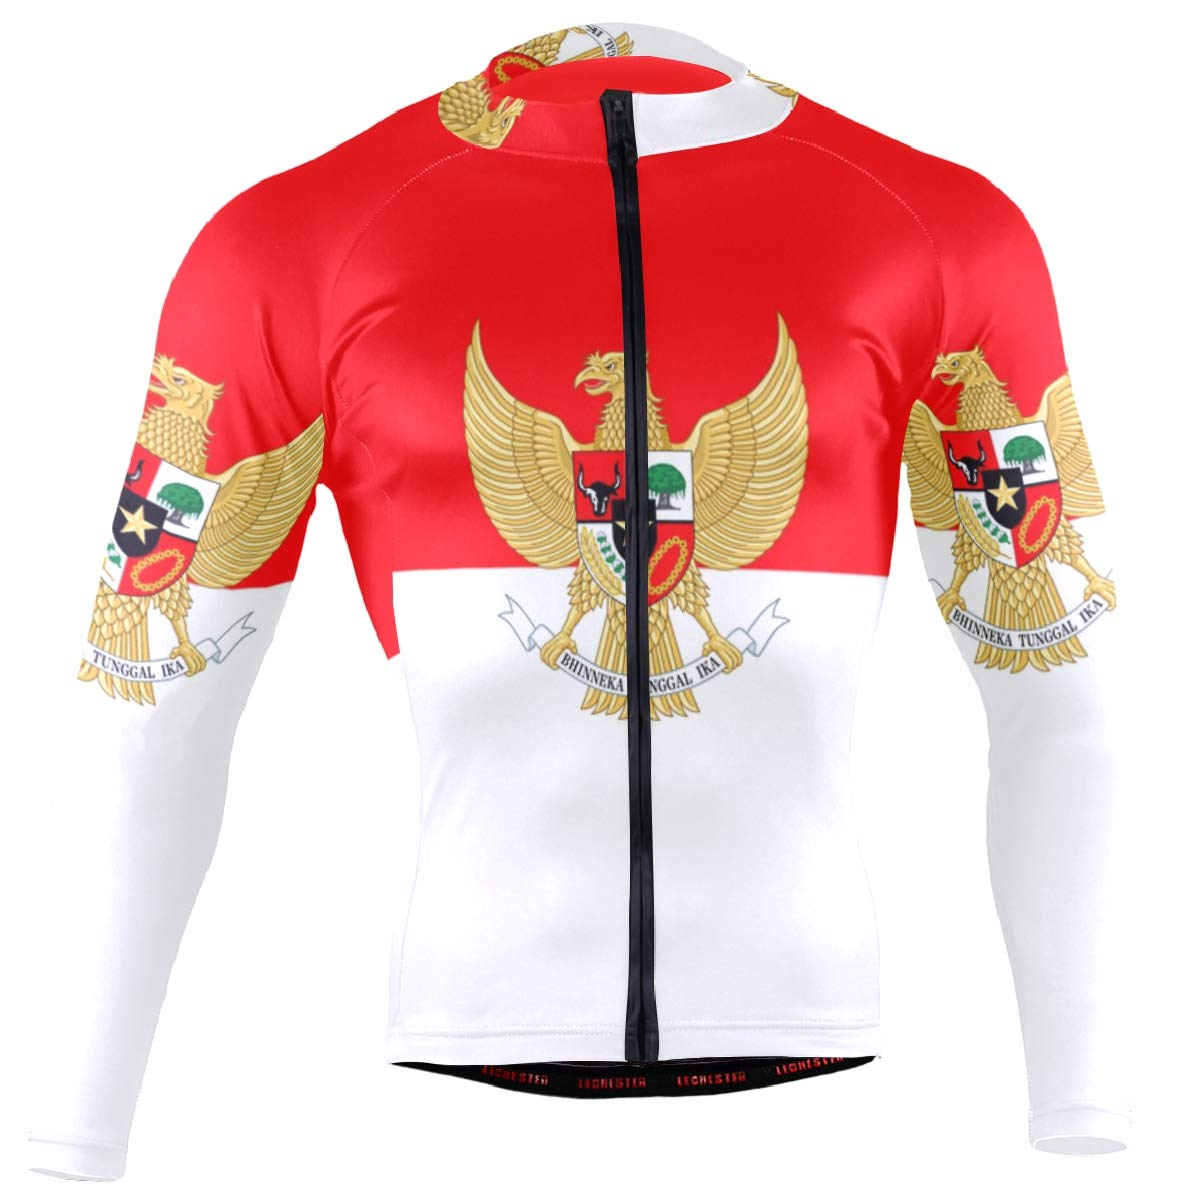 CHINEIN Men's Cycling Jersey Long Sleeve with 3 Rear Pockets Shirt Indonesia Flag National Emblem by CHINEIN